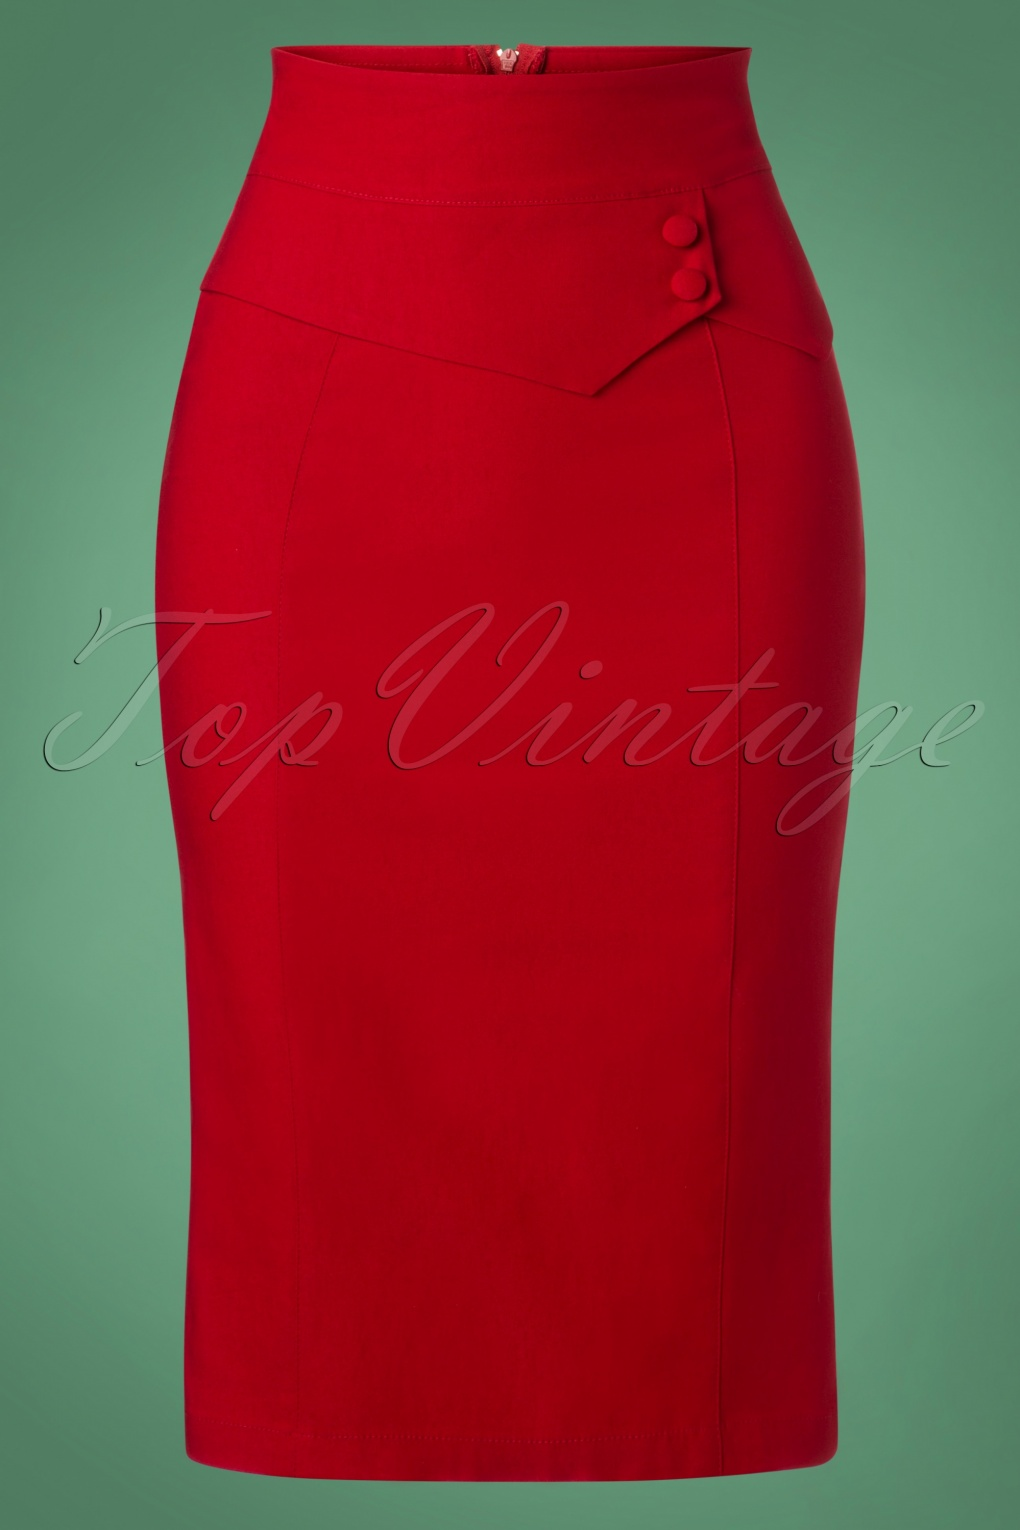 1950s Swing Skirt, Poodle Skirt, Pencil Skirts 50s Bernice Pencil Skirt in Red £44.30 AT vintagedancer.com